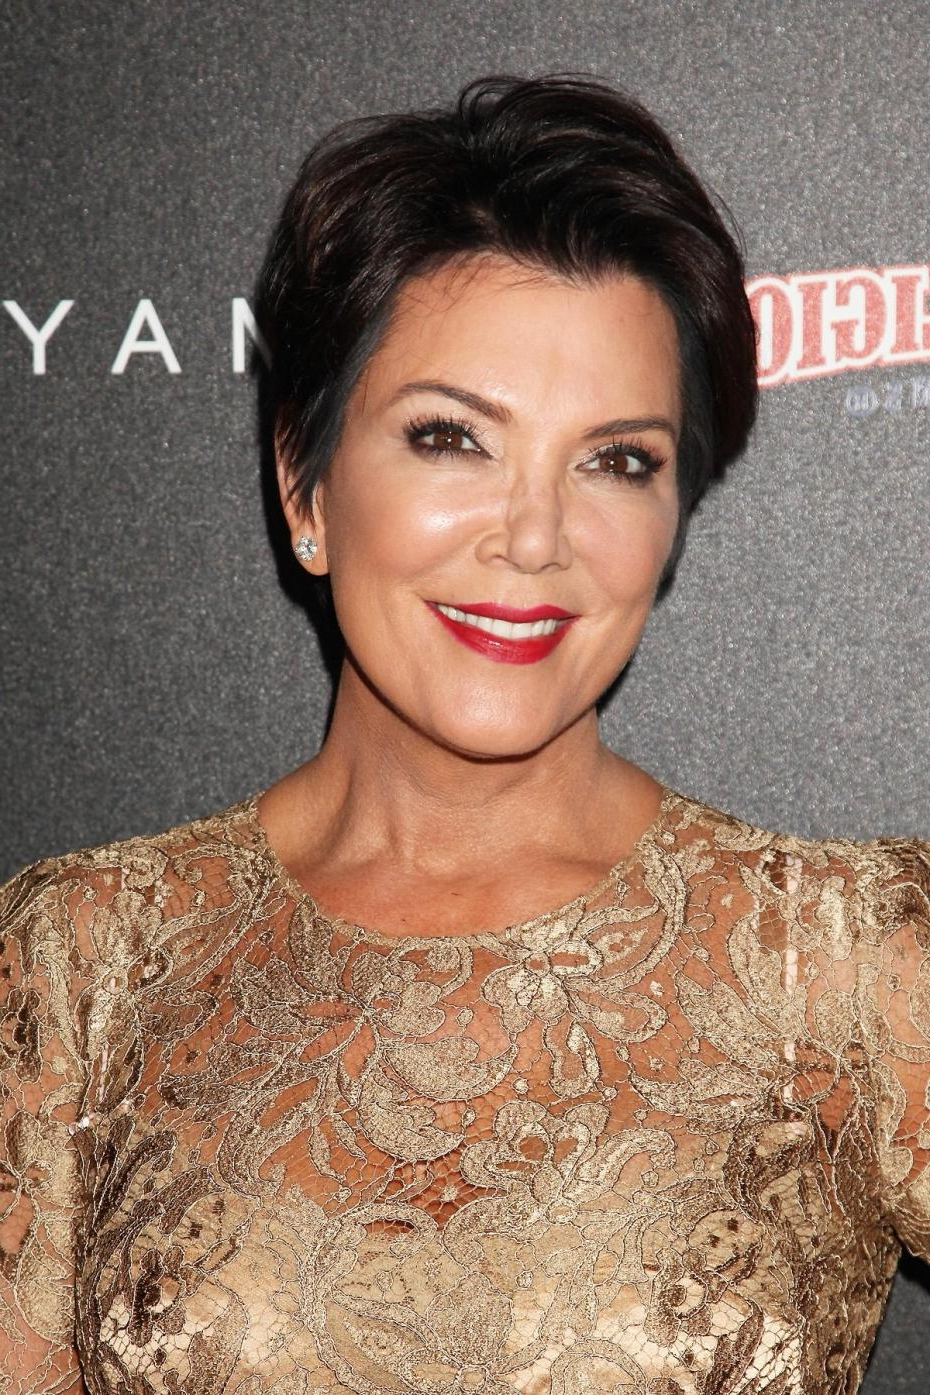 Kris Jenner And Her Short Layered Haircut – Hair World Magazine Pertaining To Kris Jenner Short Haircuts (View 11 of 25)